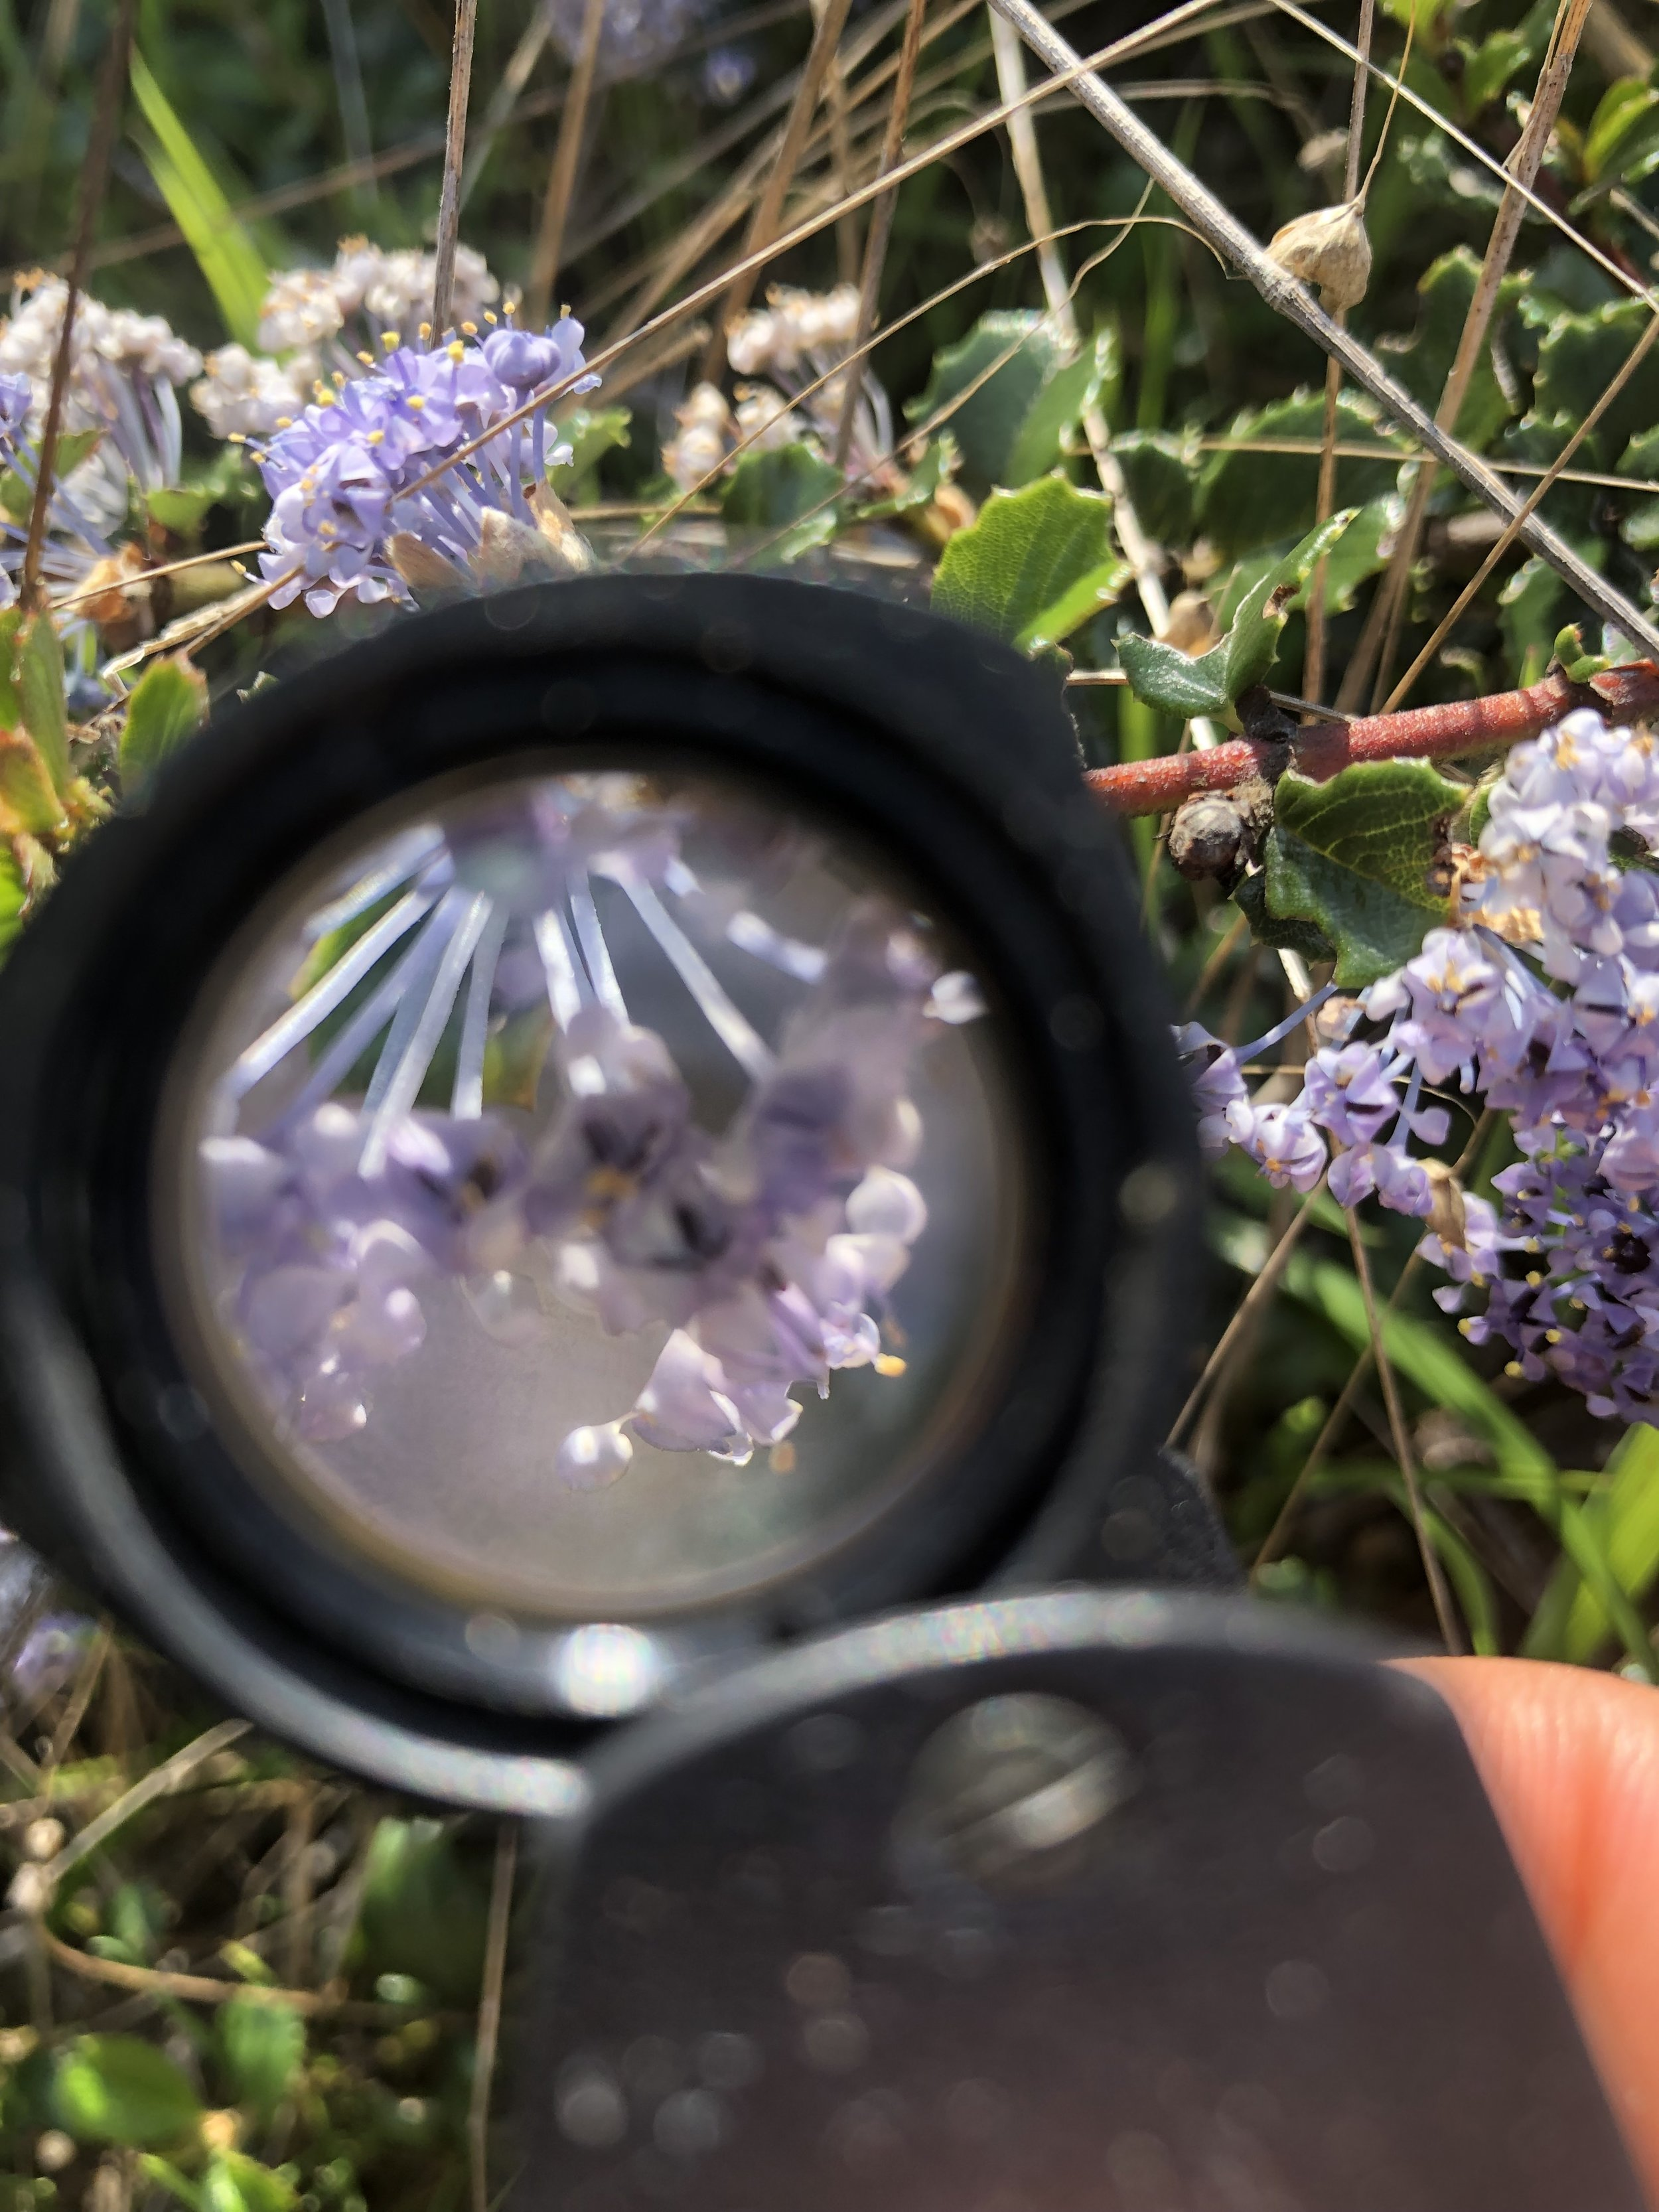 Ceanothus spp. flowers through a loupe. Taken Spring 2019 - Salt Point State Park.